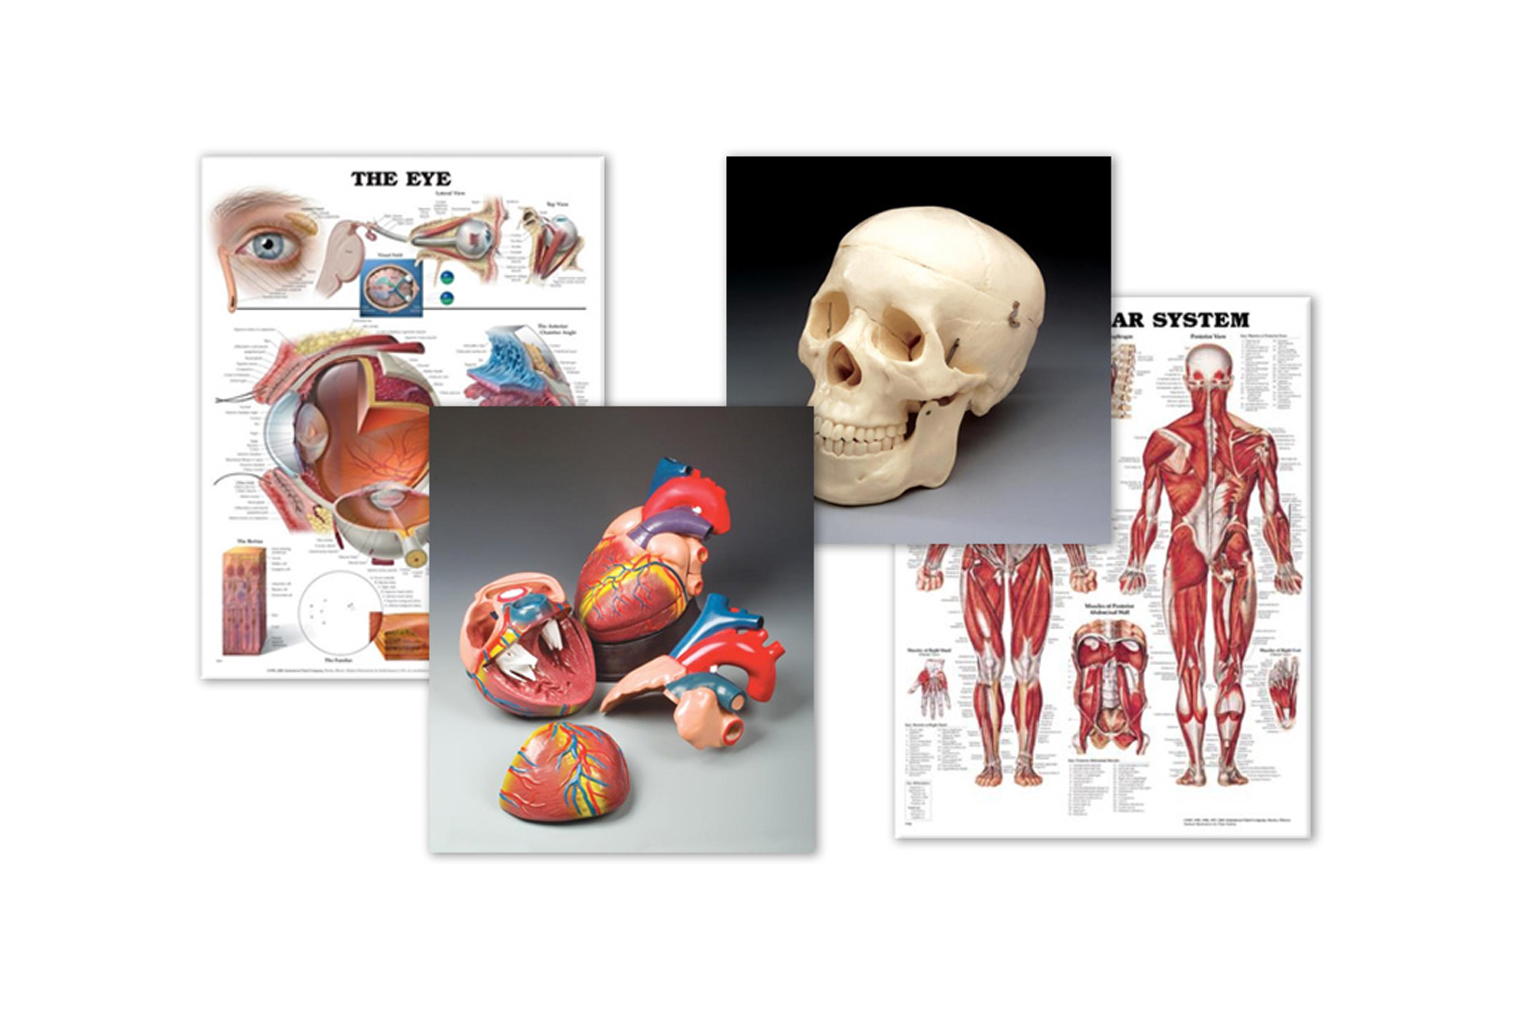 A collection of charts and images of of models from the Anatomy Chart Company